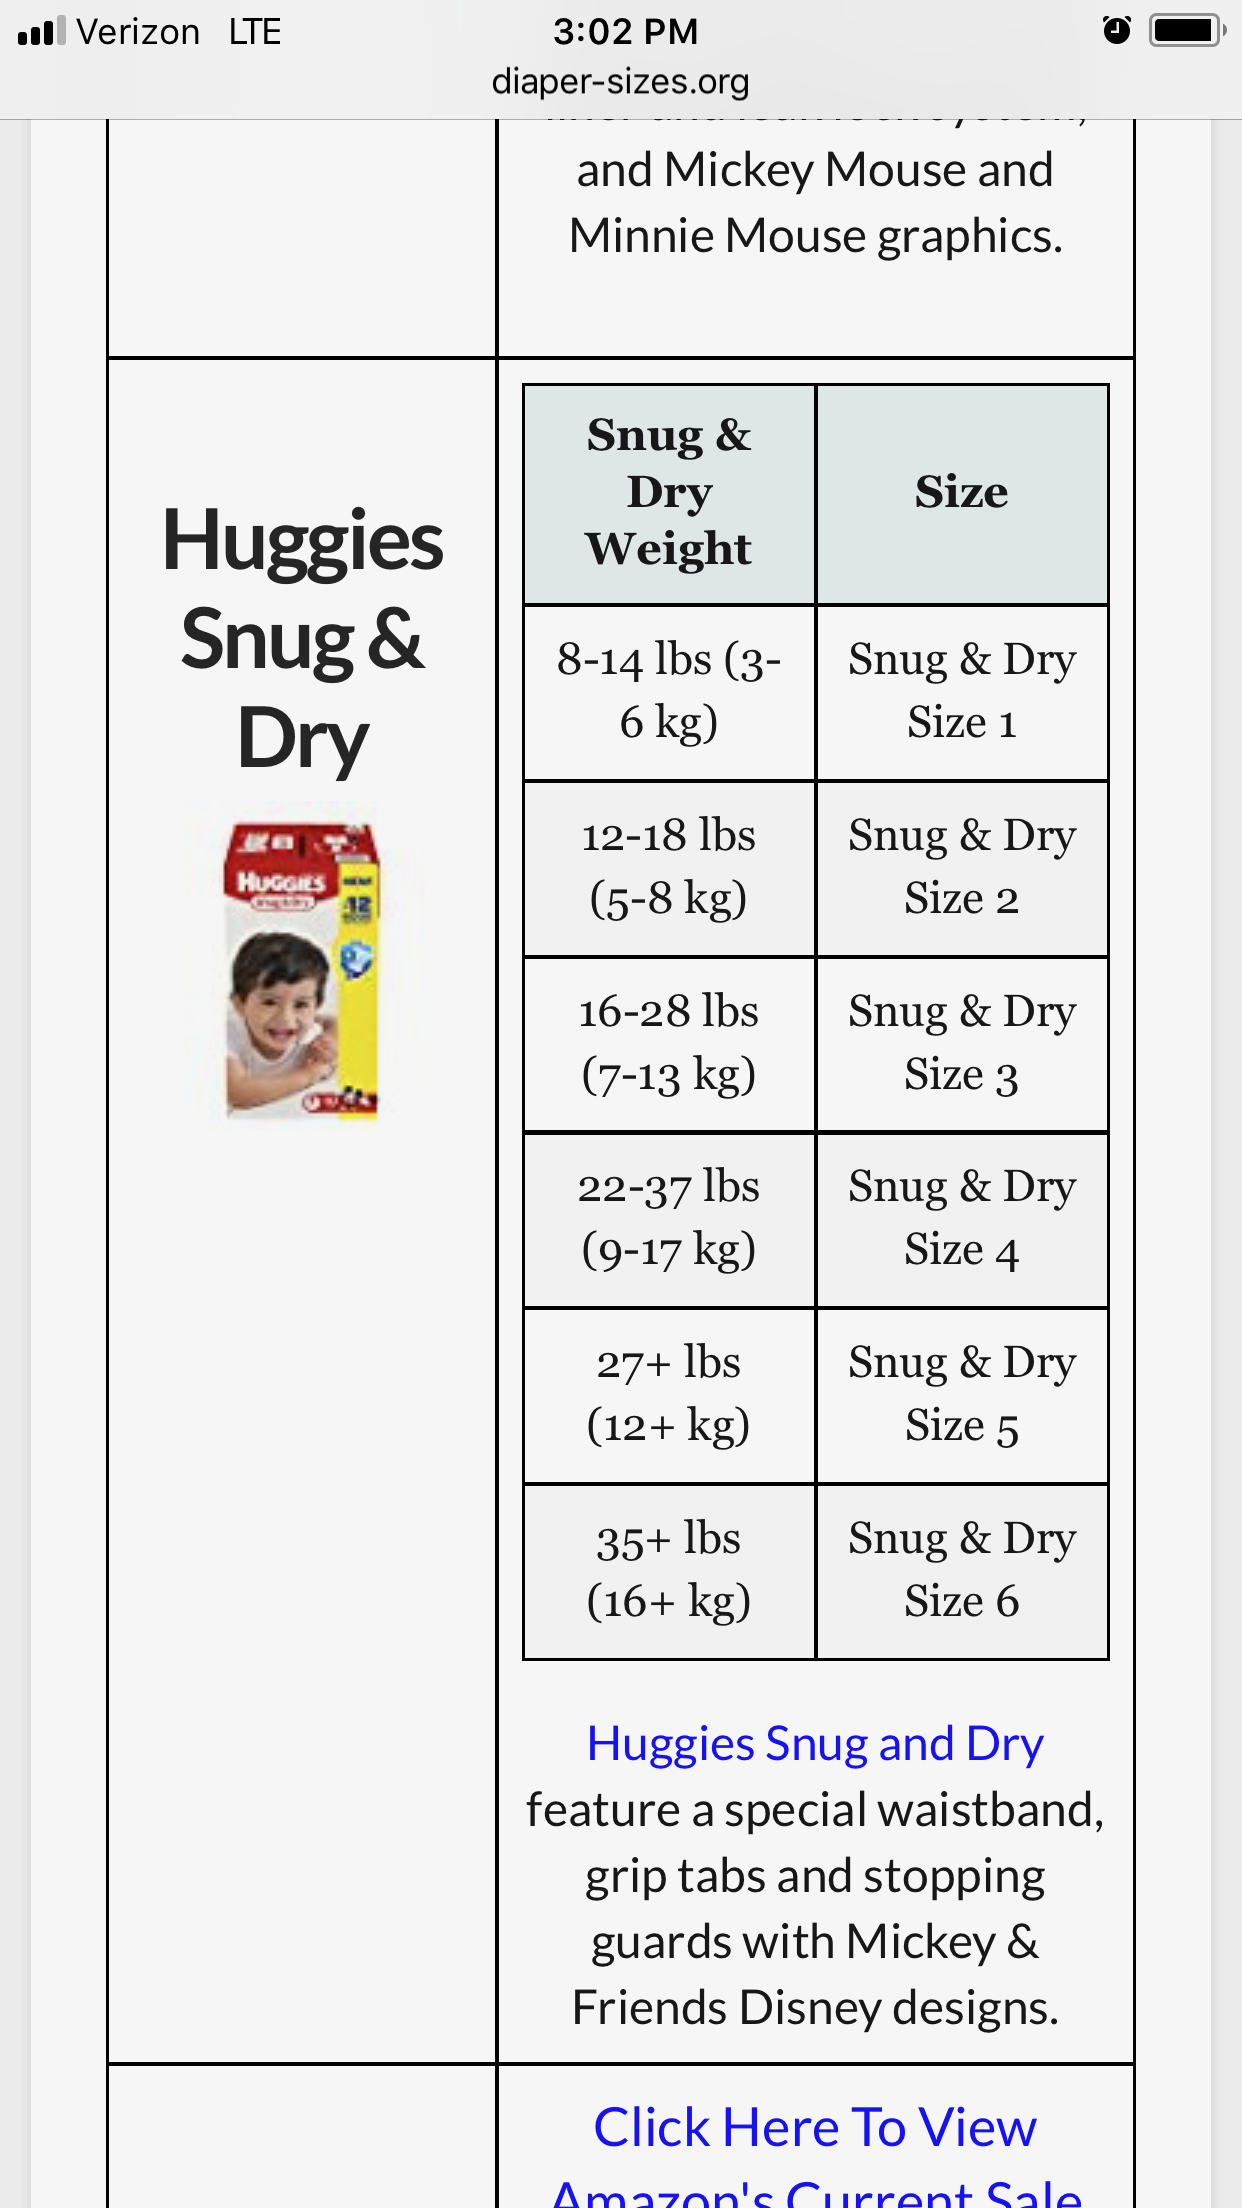 Diapers Size Chart : diapers, chart, Huggies, Chart, Diaper, Chart,, Sizes